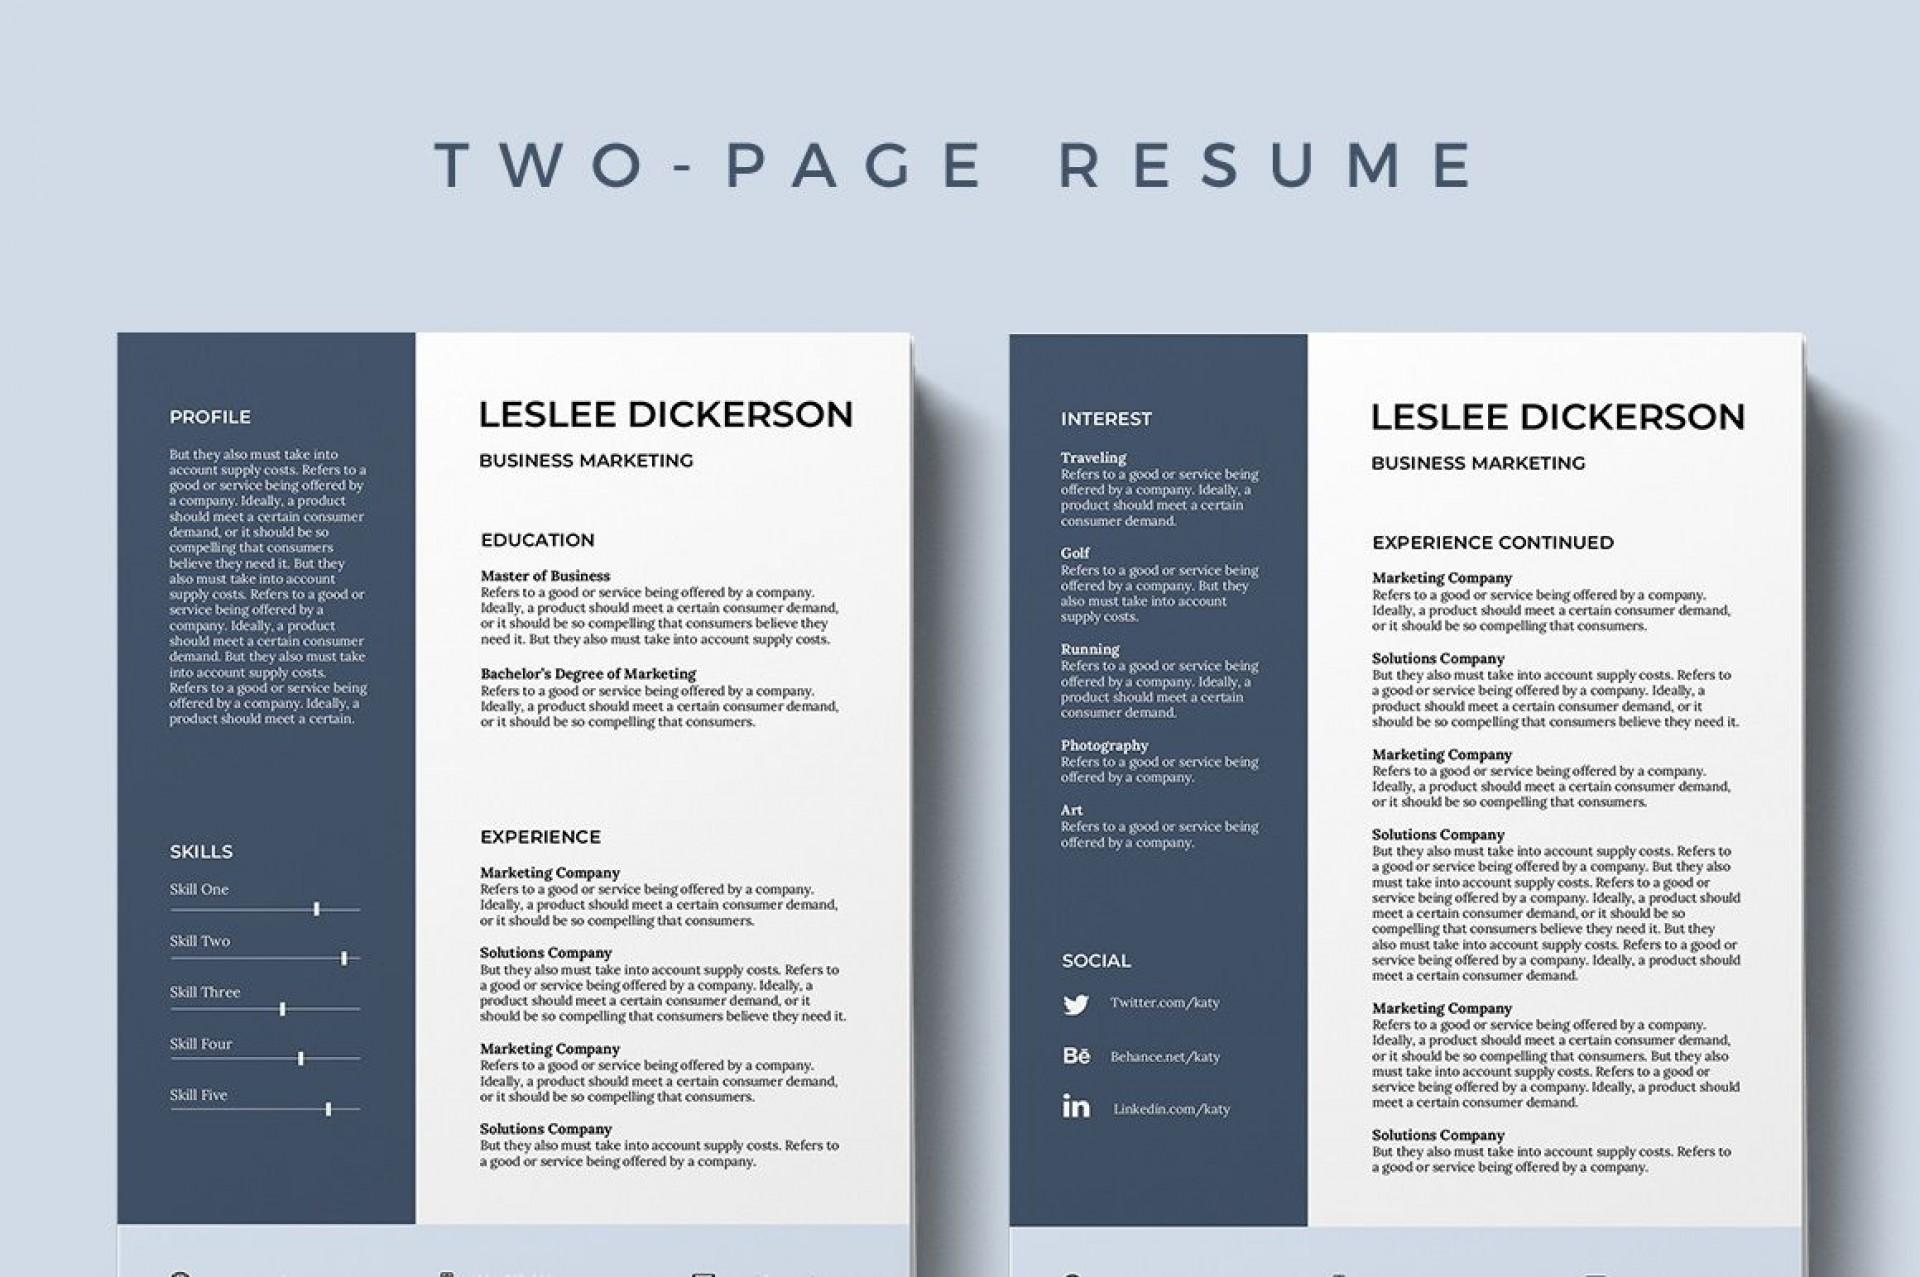 003 Breathtaking Professional Resume Template Word Free Download Idea  Cv 2020 With Photo1920